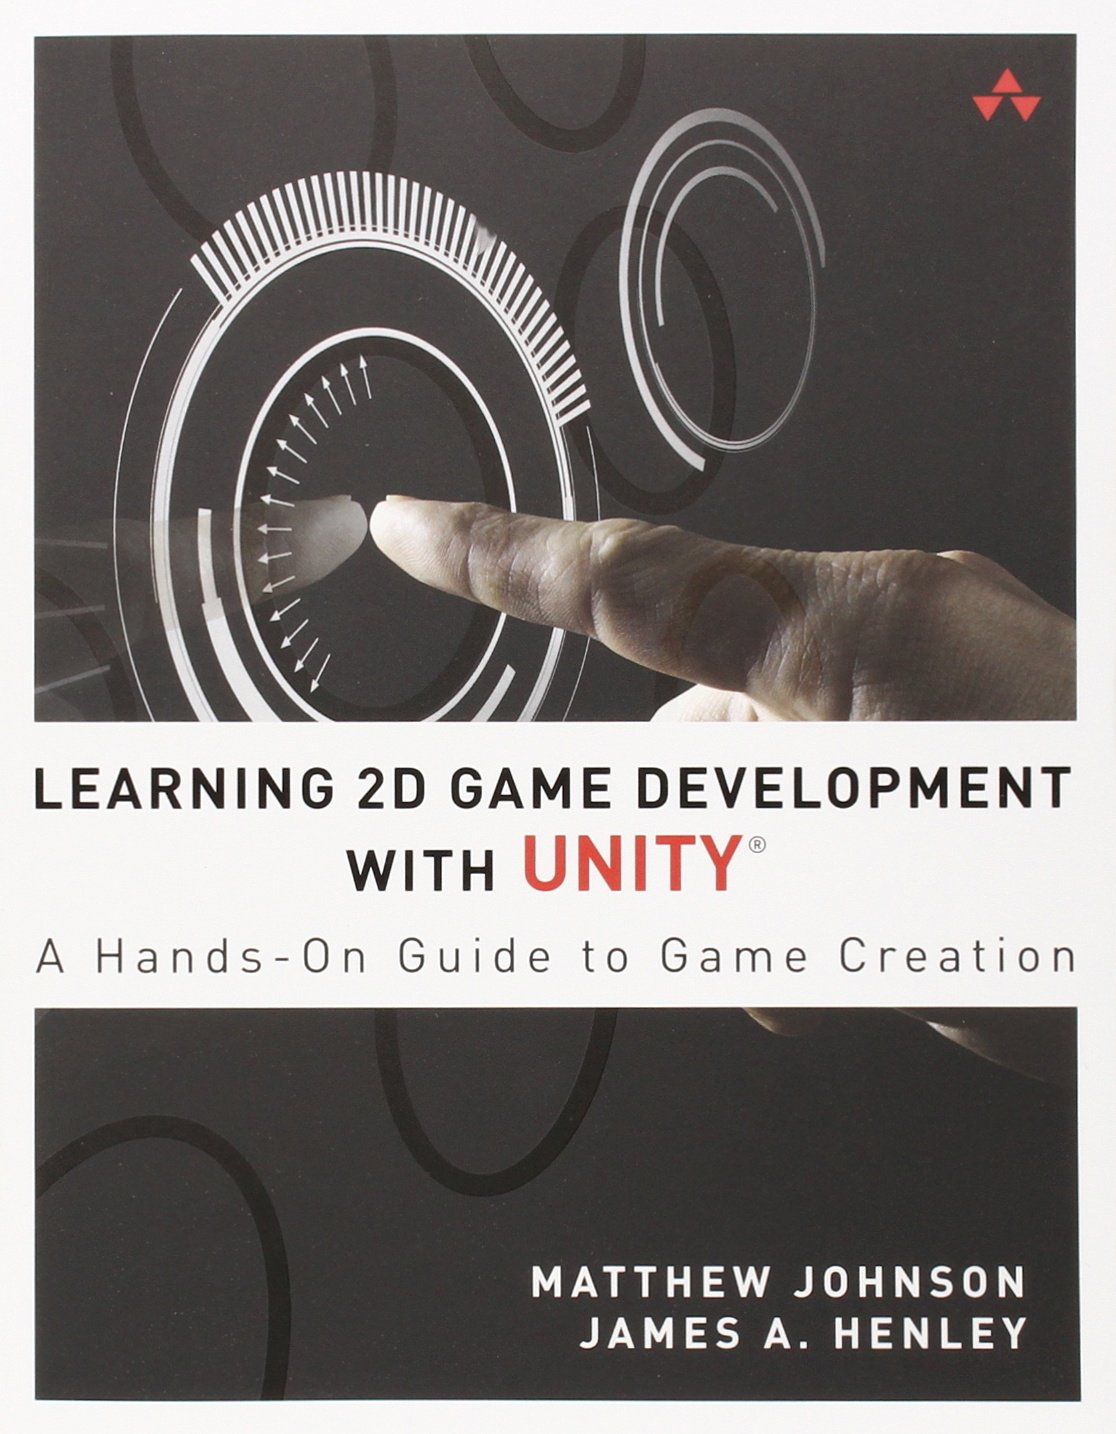 Amazon com: Learning 2D Game Development with Unity: A Hands